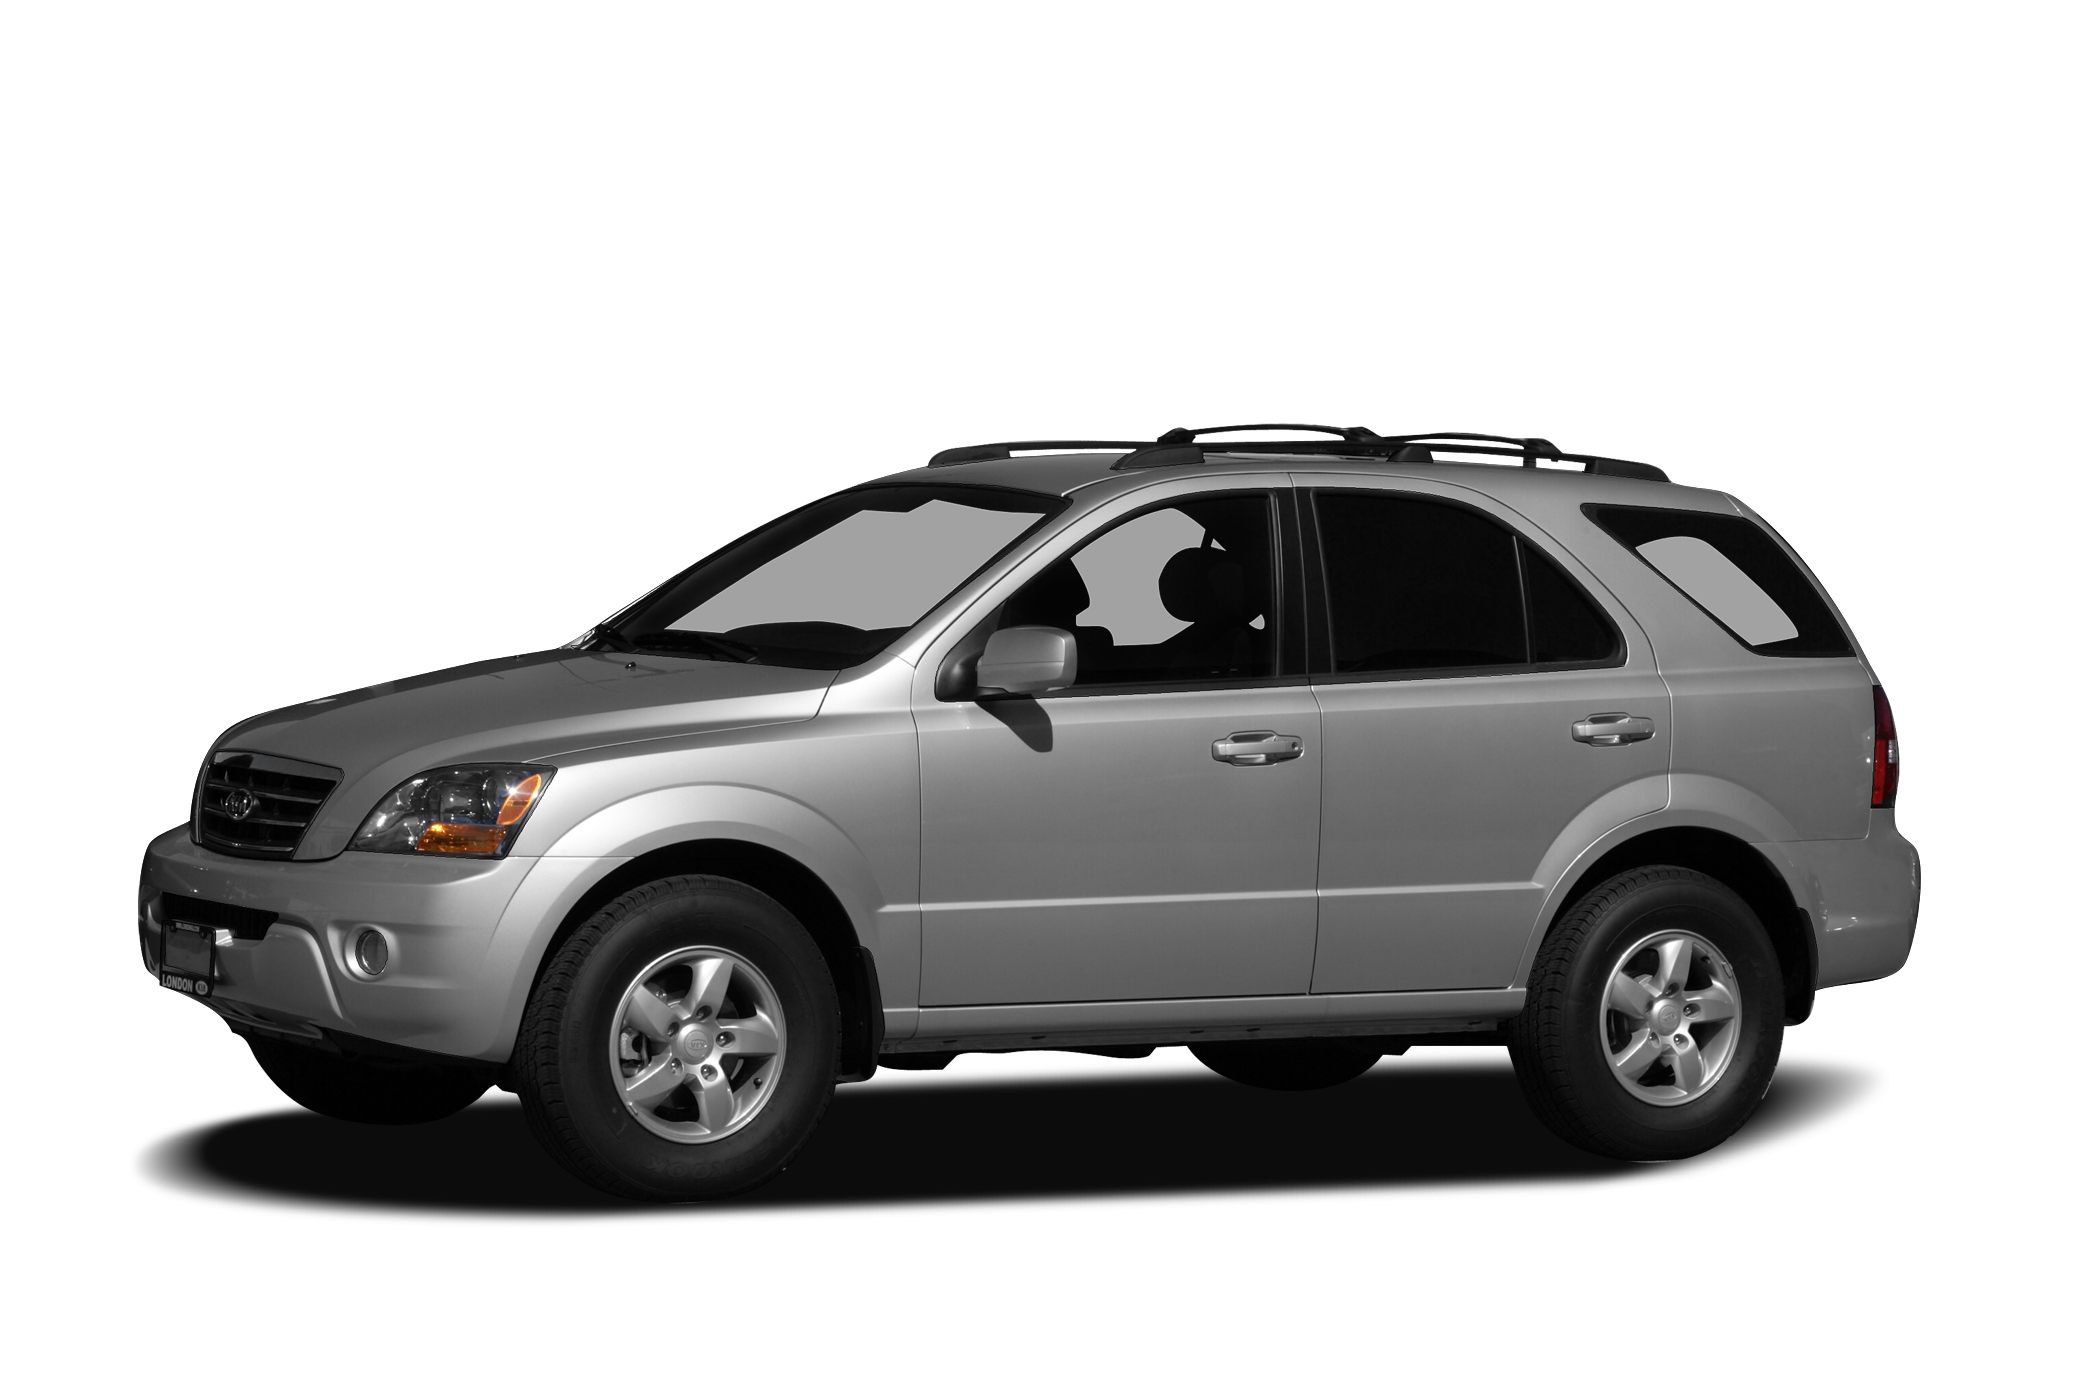 2007 Kia Sorento LX SUV for sale in Memphis for $8,950 with 86,015 miles